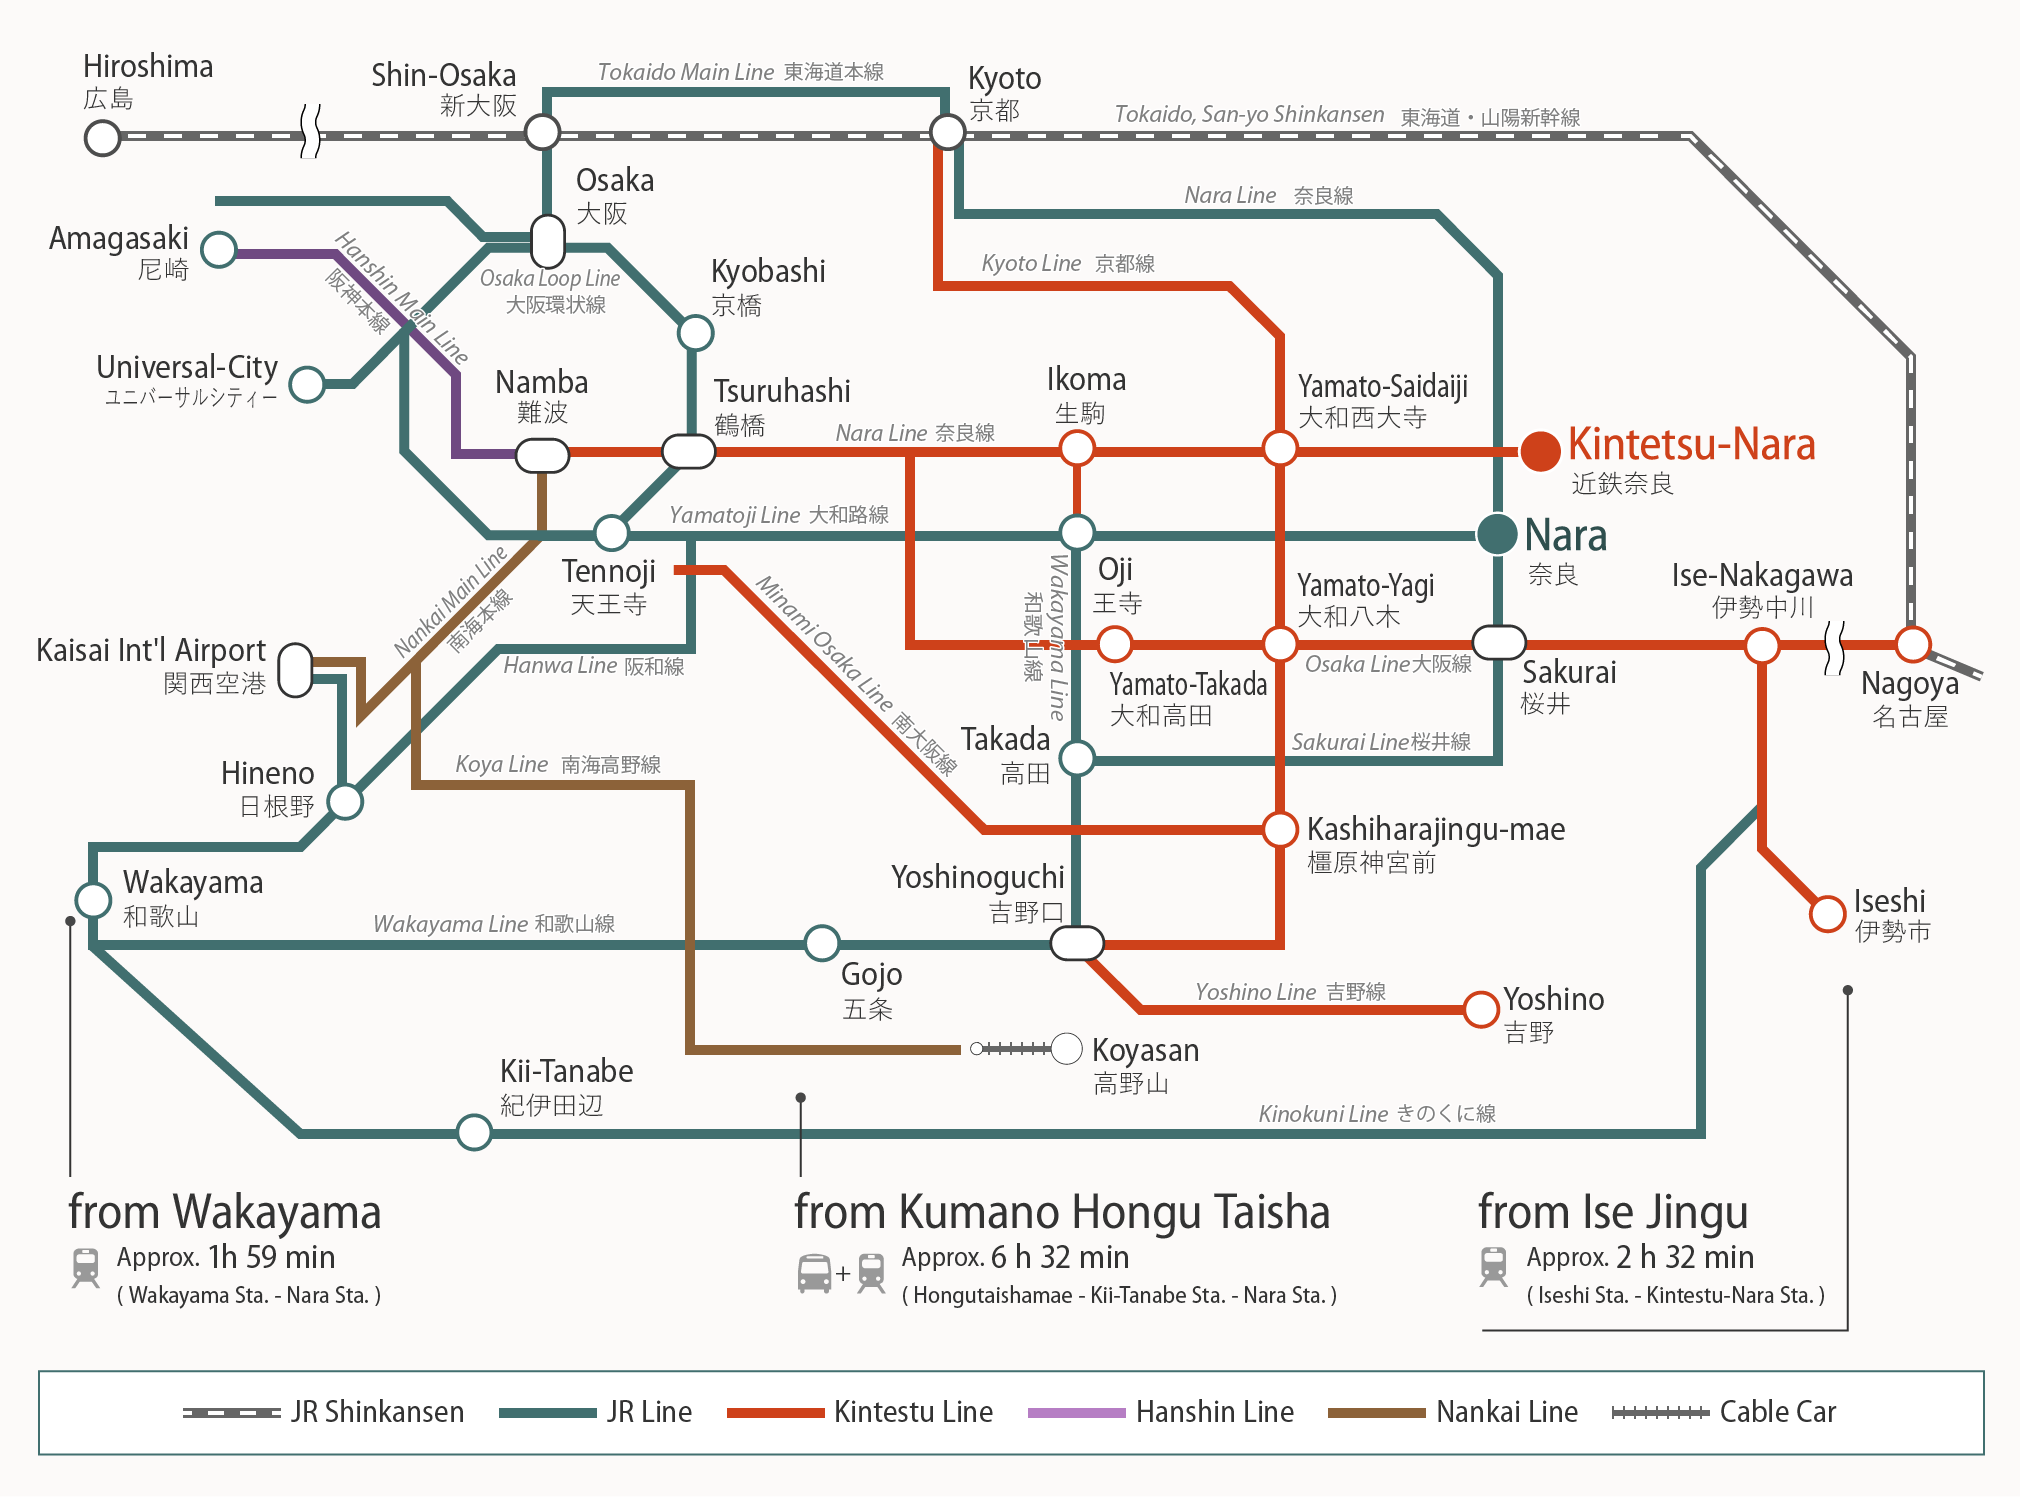 Diagram showing Nara's rail network and train links with Kyoto, Osaka and other neigboring areas